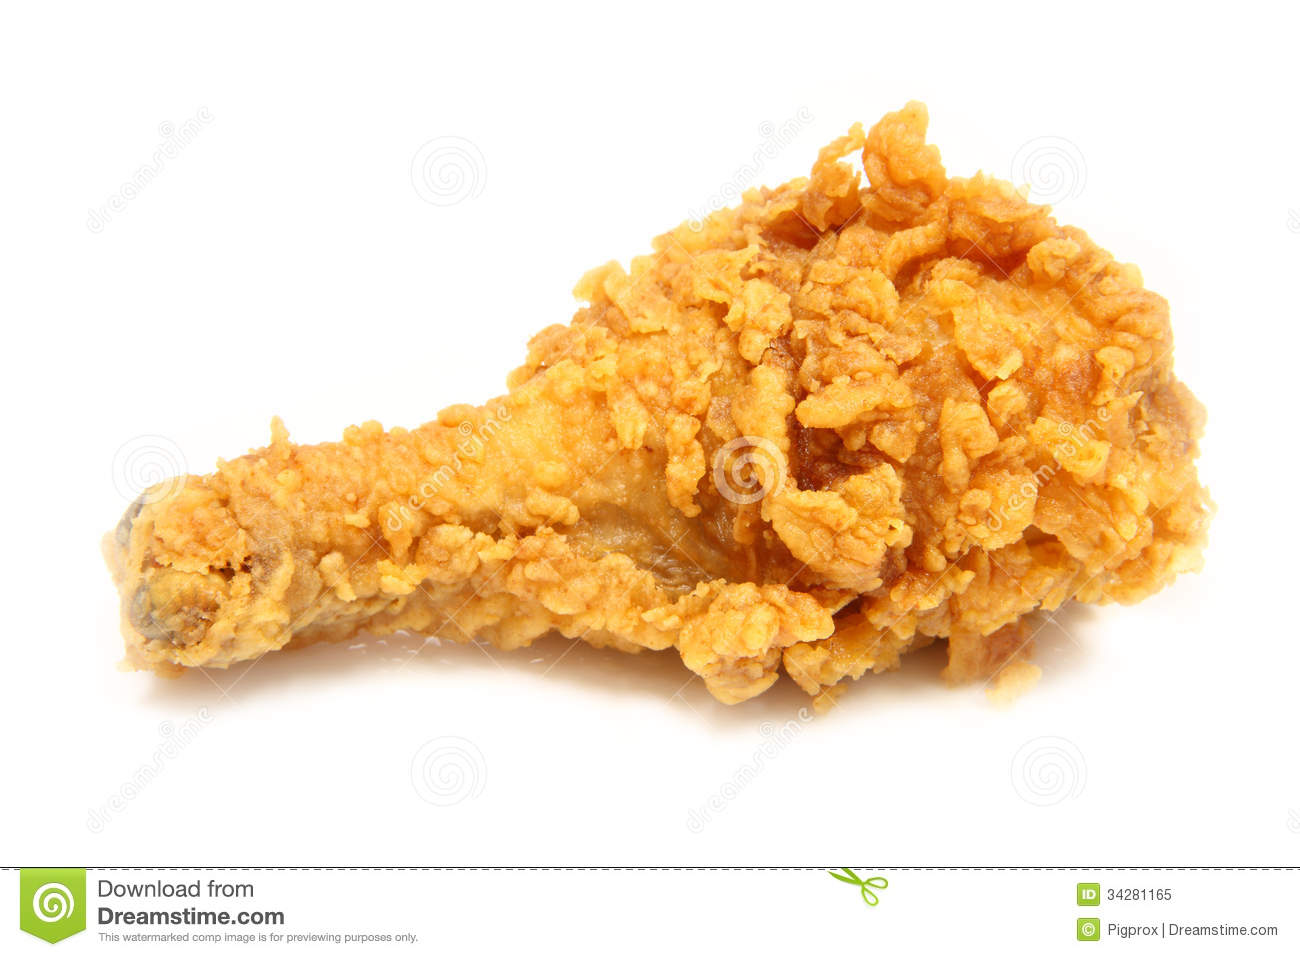 Royalty Free Stock Photo Golden Brown Fried Chicken Drumsticks White Blackgound Image34281165 on turkey lunch meat nutrition information